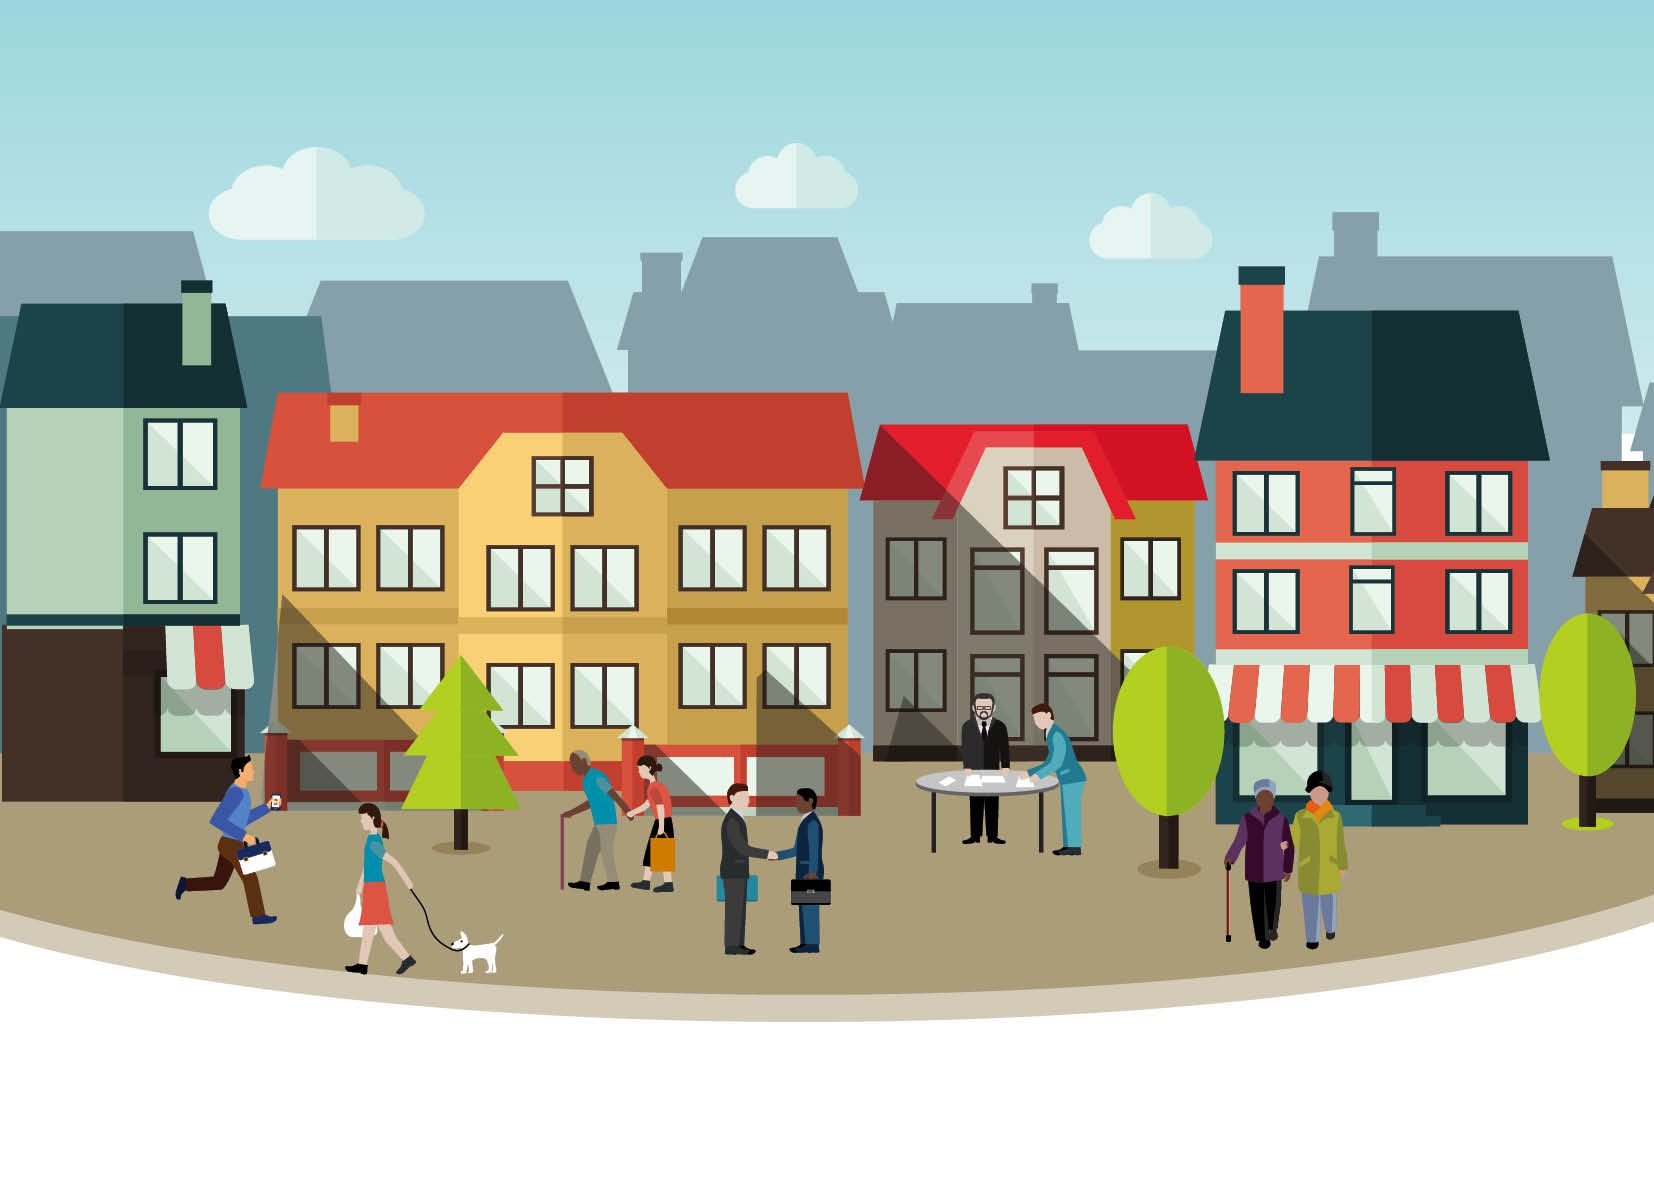 Can a wellbeing approach help towns to flourish?